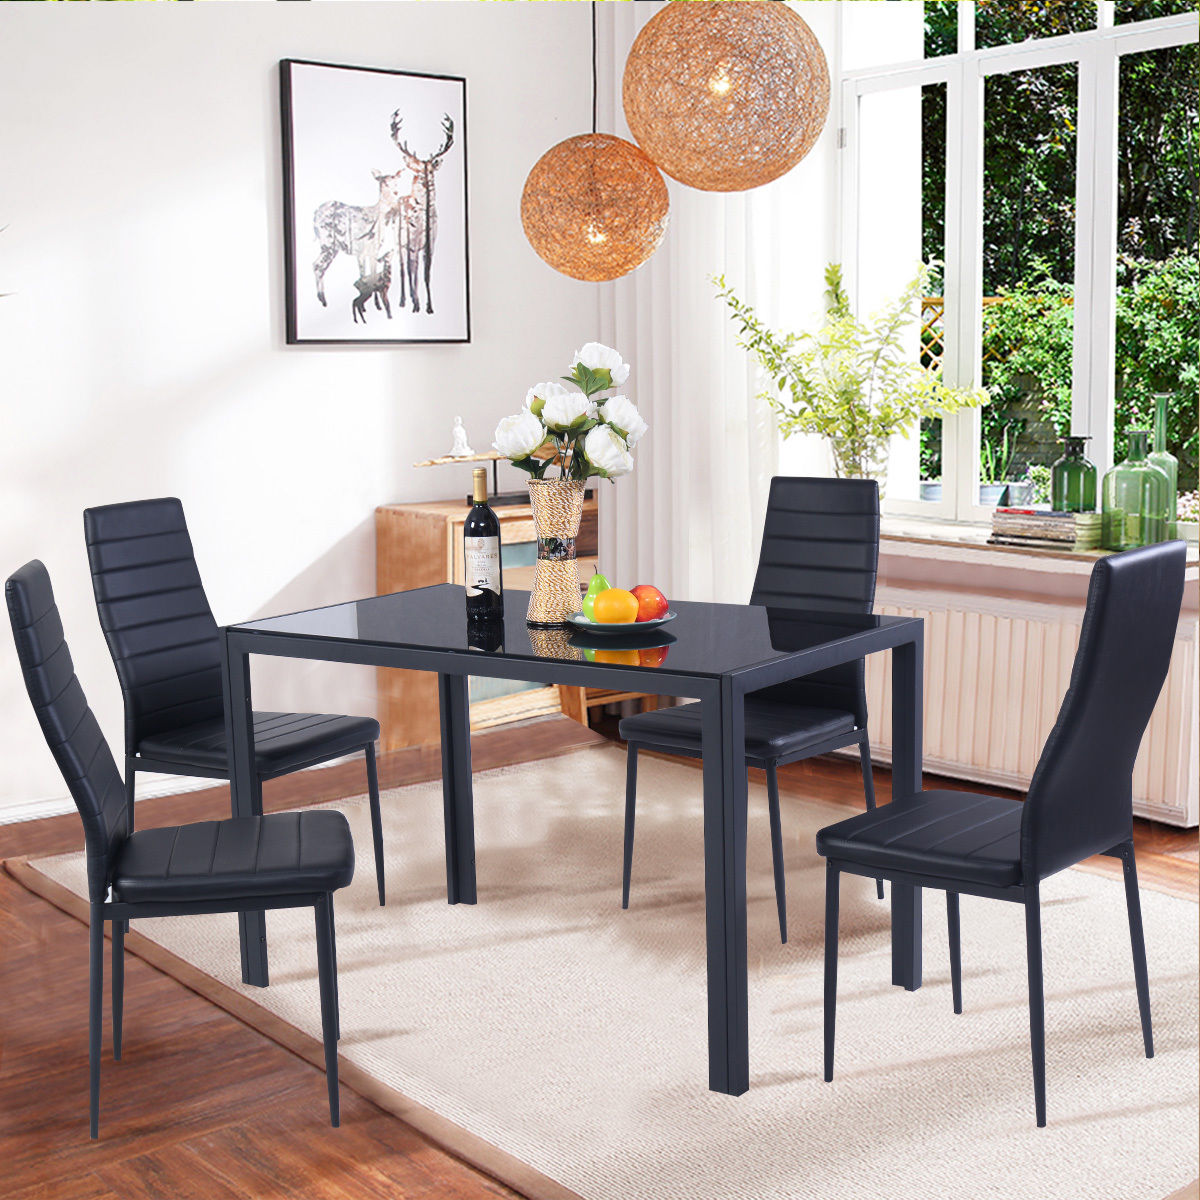 Superior Costway 5 Piece Kitchen Dining Set Glass Metal Table And 4 Chairs Breakfast  Furniture